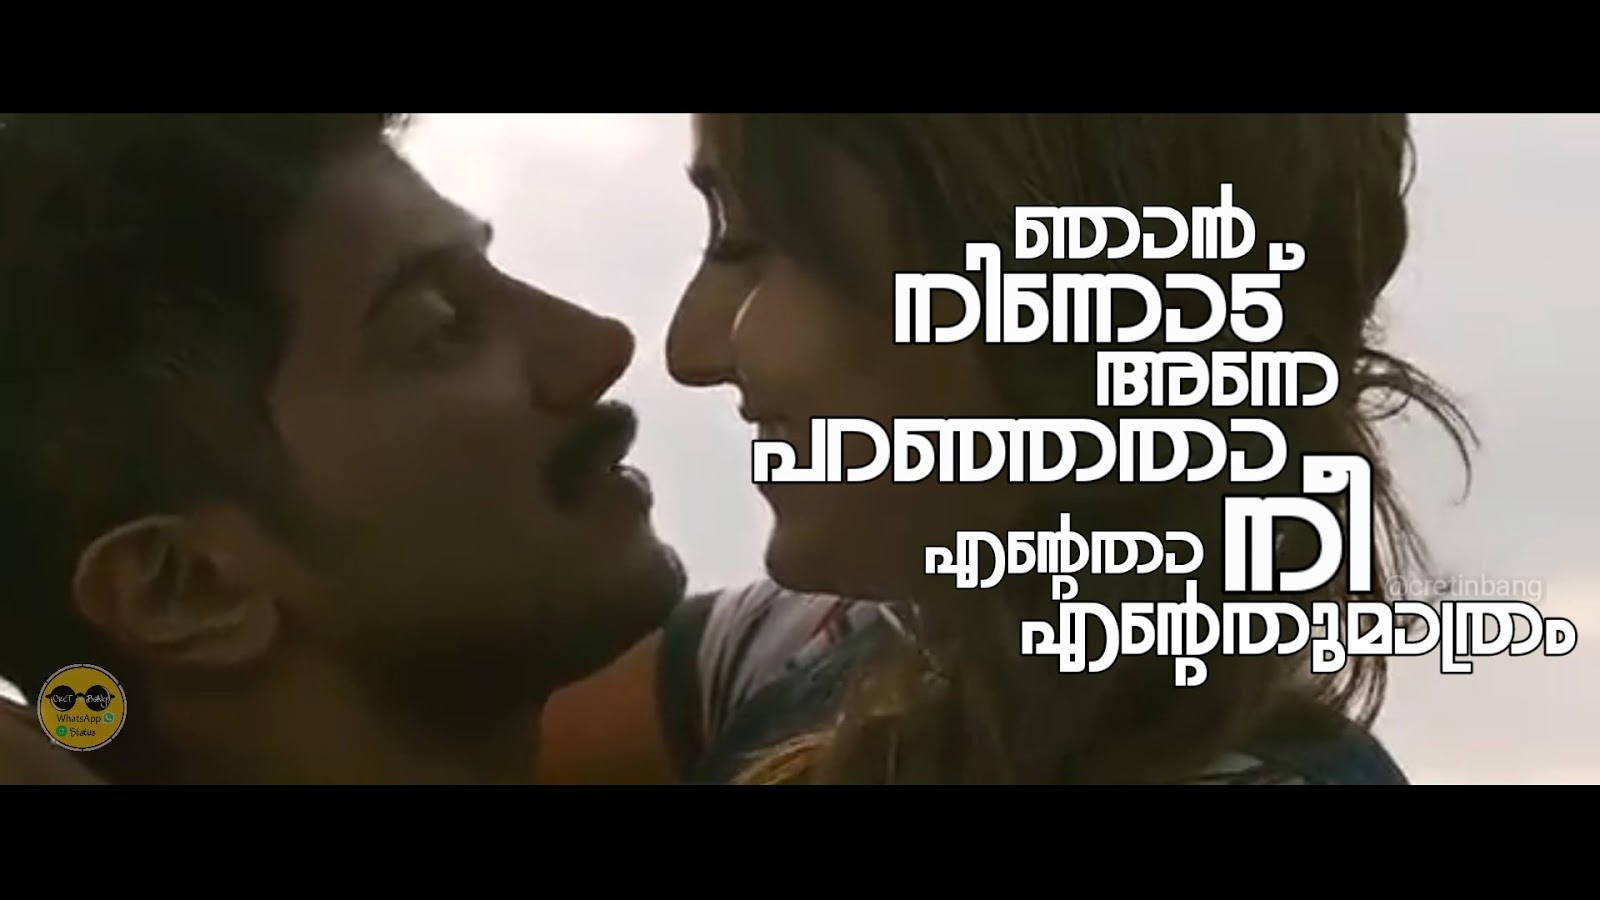 Malayalam Love Quotes For Whatsapp Dp Archidev